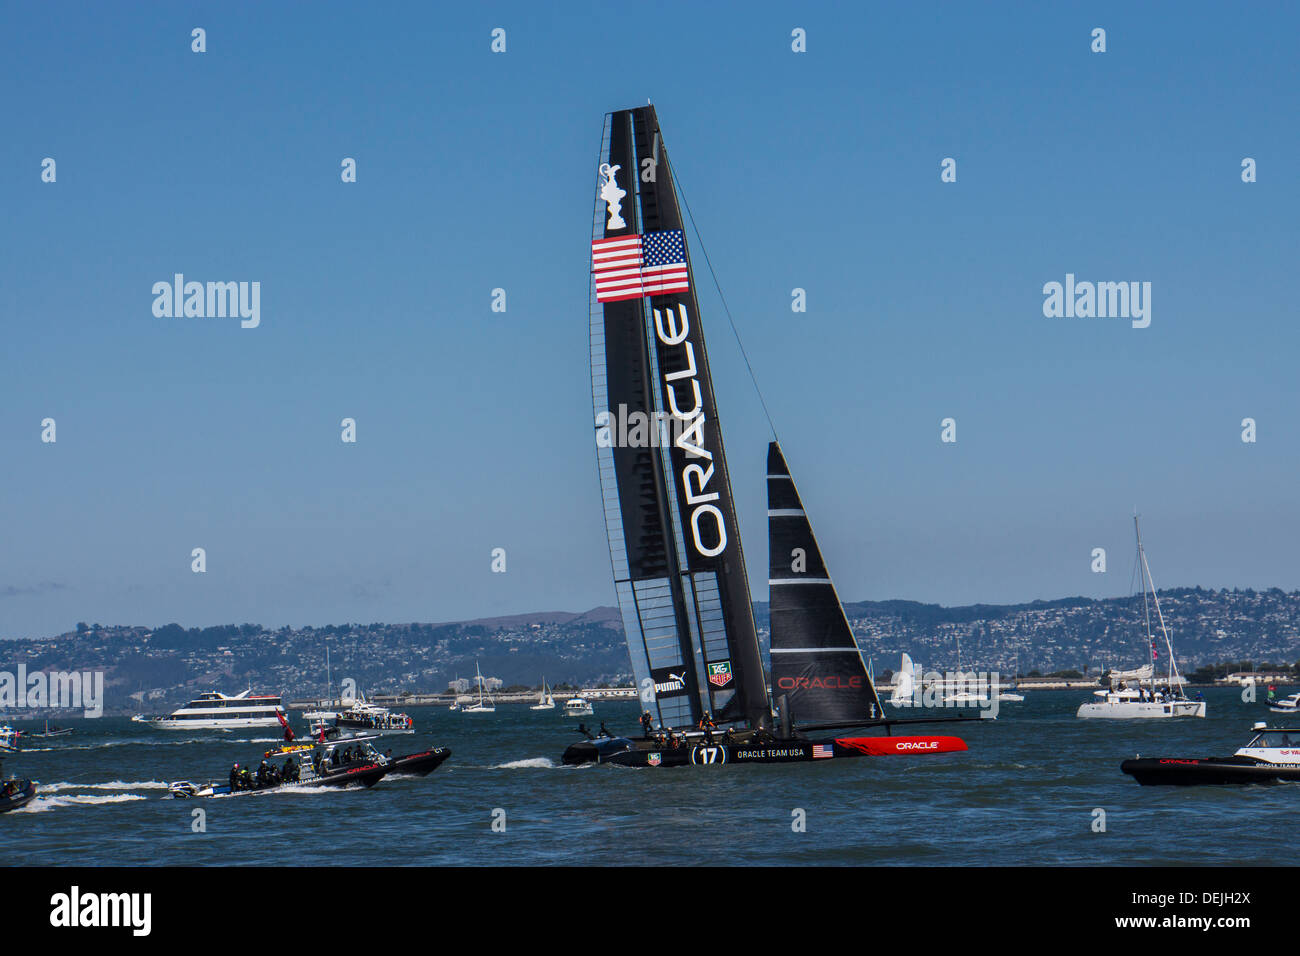 Oracle Team USA catamaran in the America's Cup Race on September 12th in San Francisco Bay followed by flotilla - Stock Image